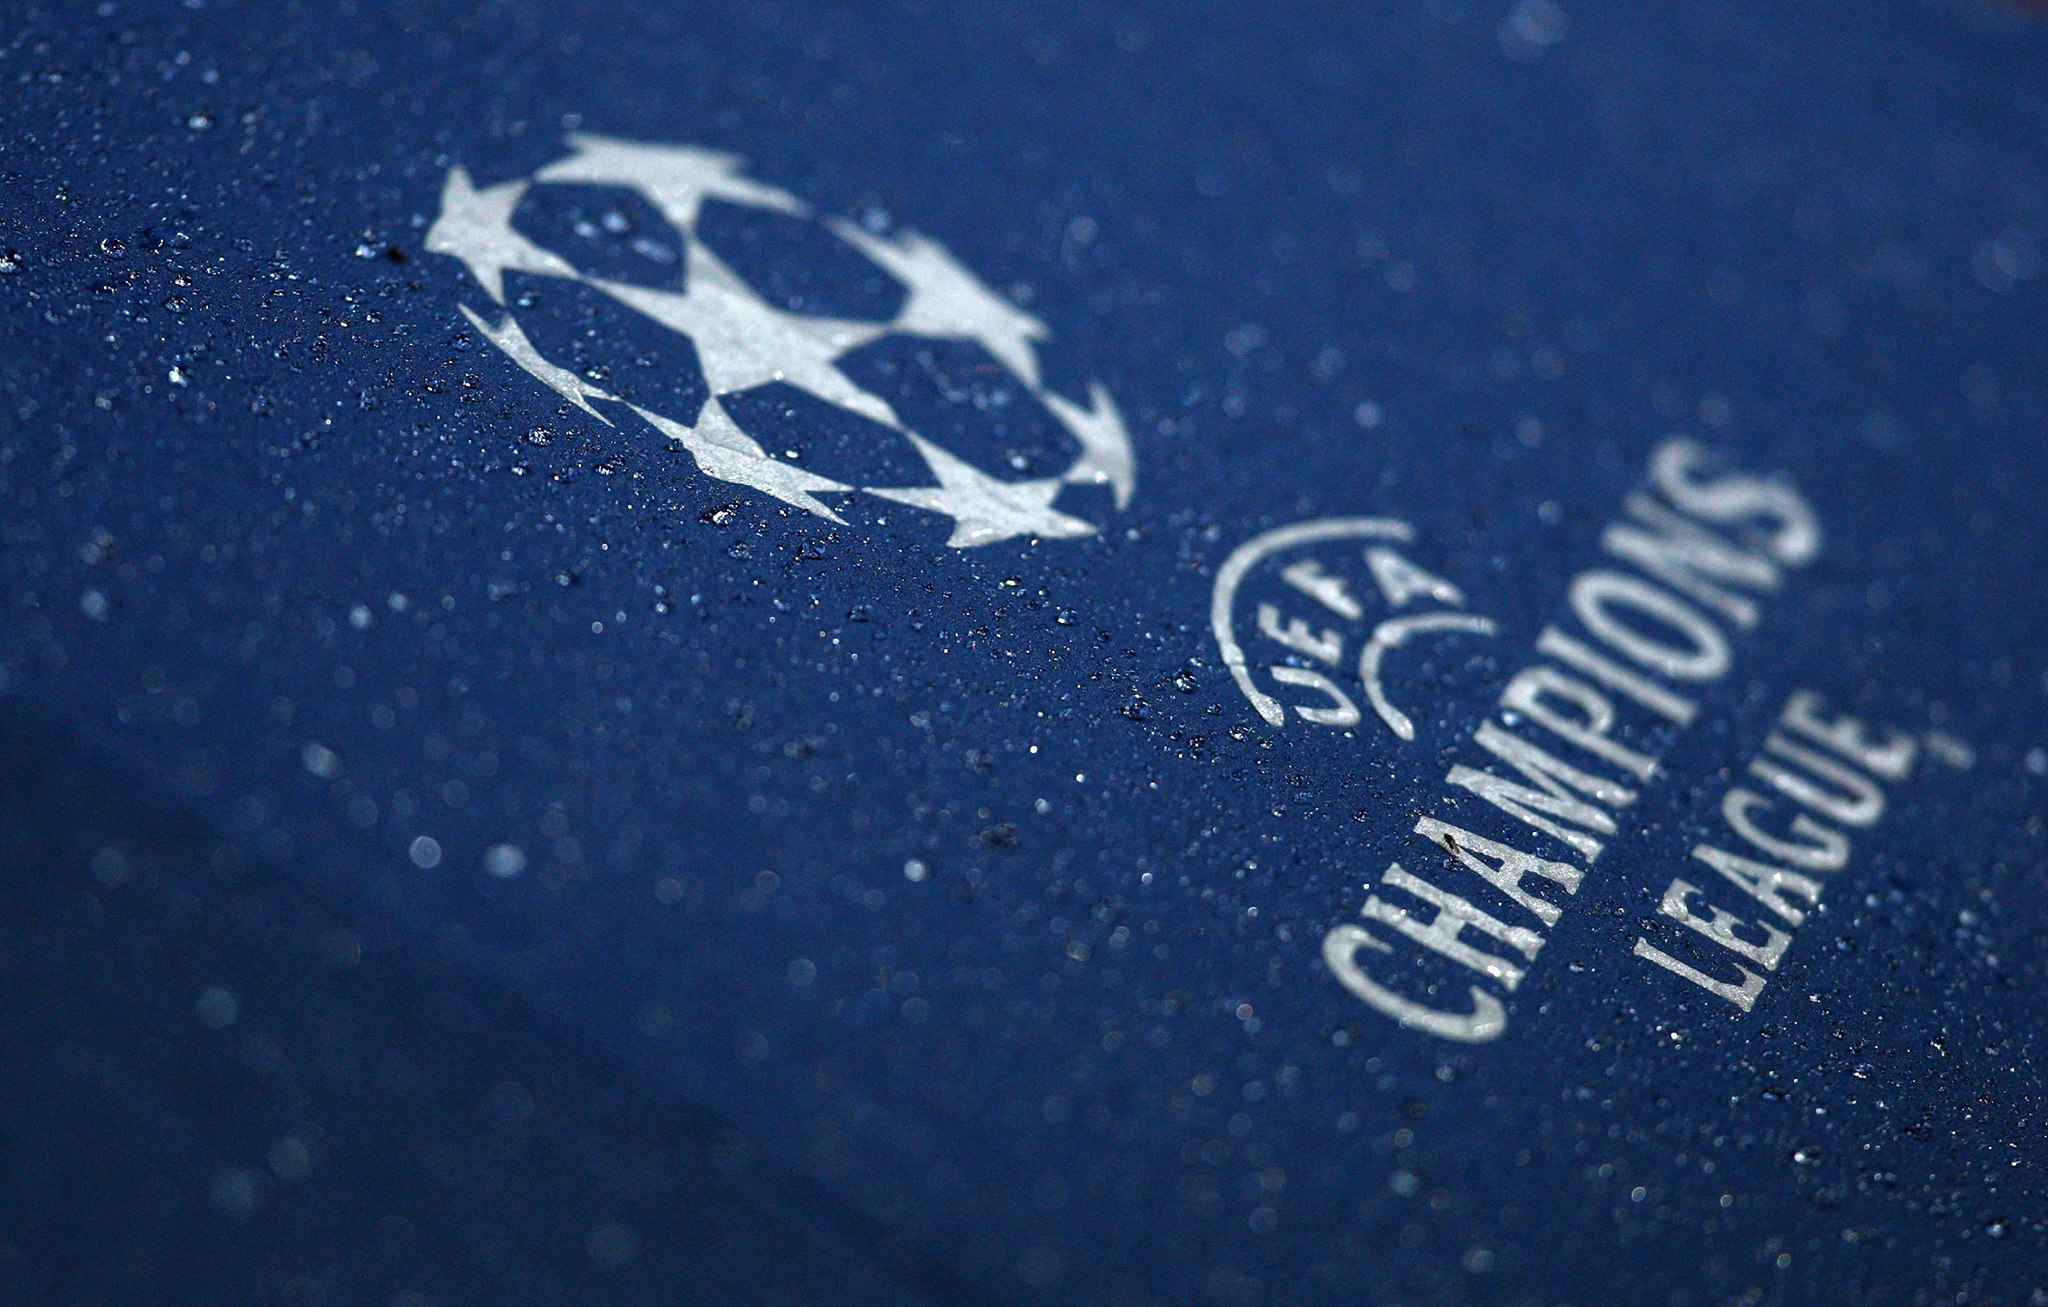 champions-league-se-va-juca-in-portugalia-europa-league-in-germania